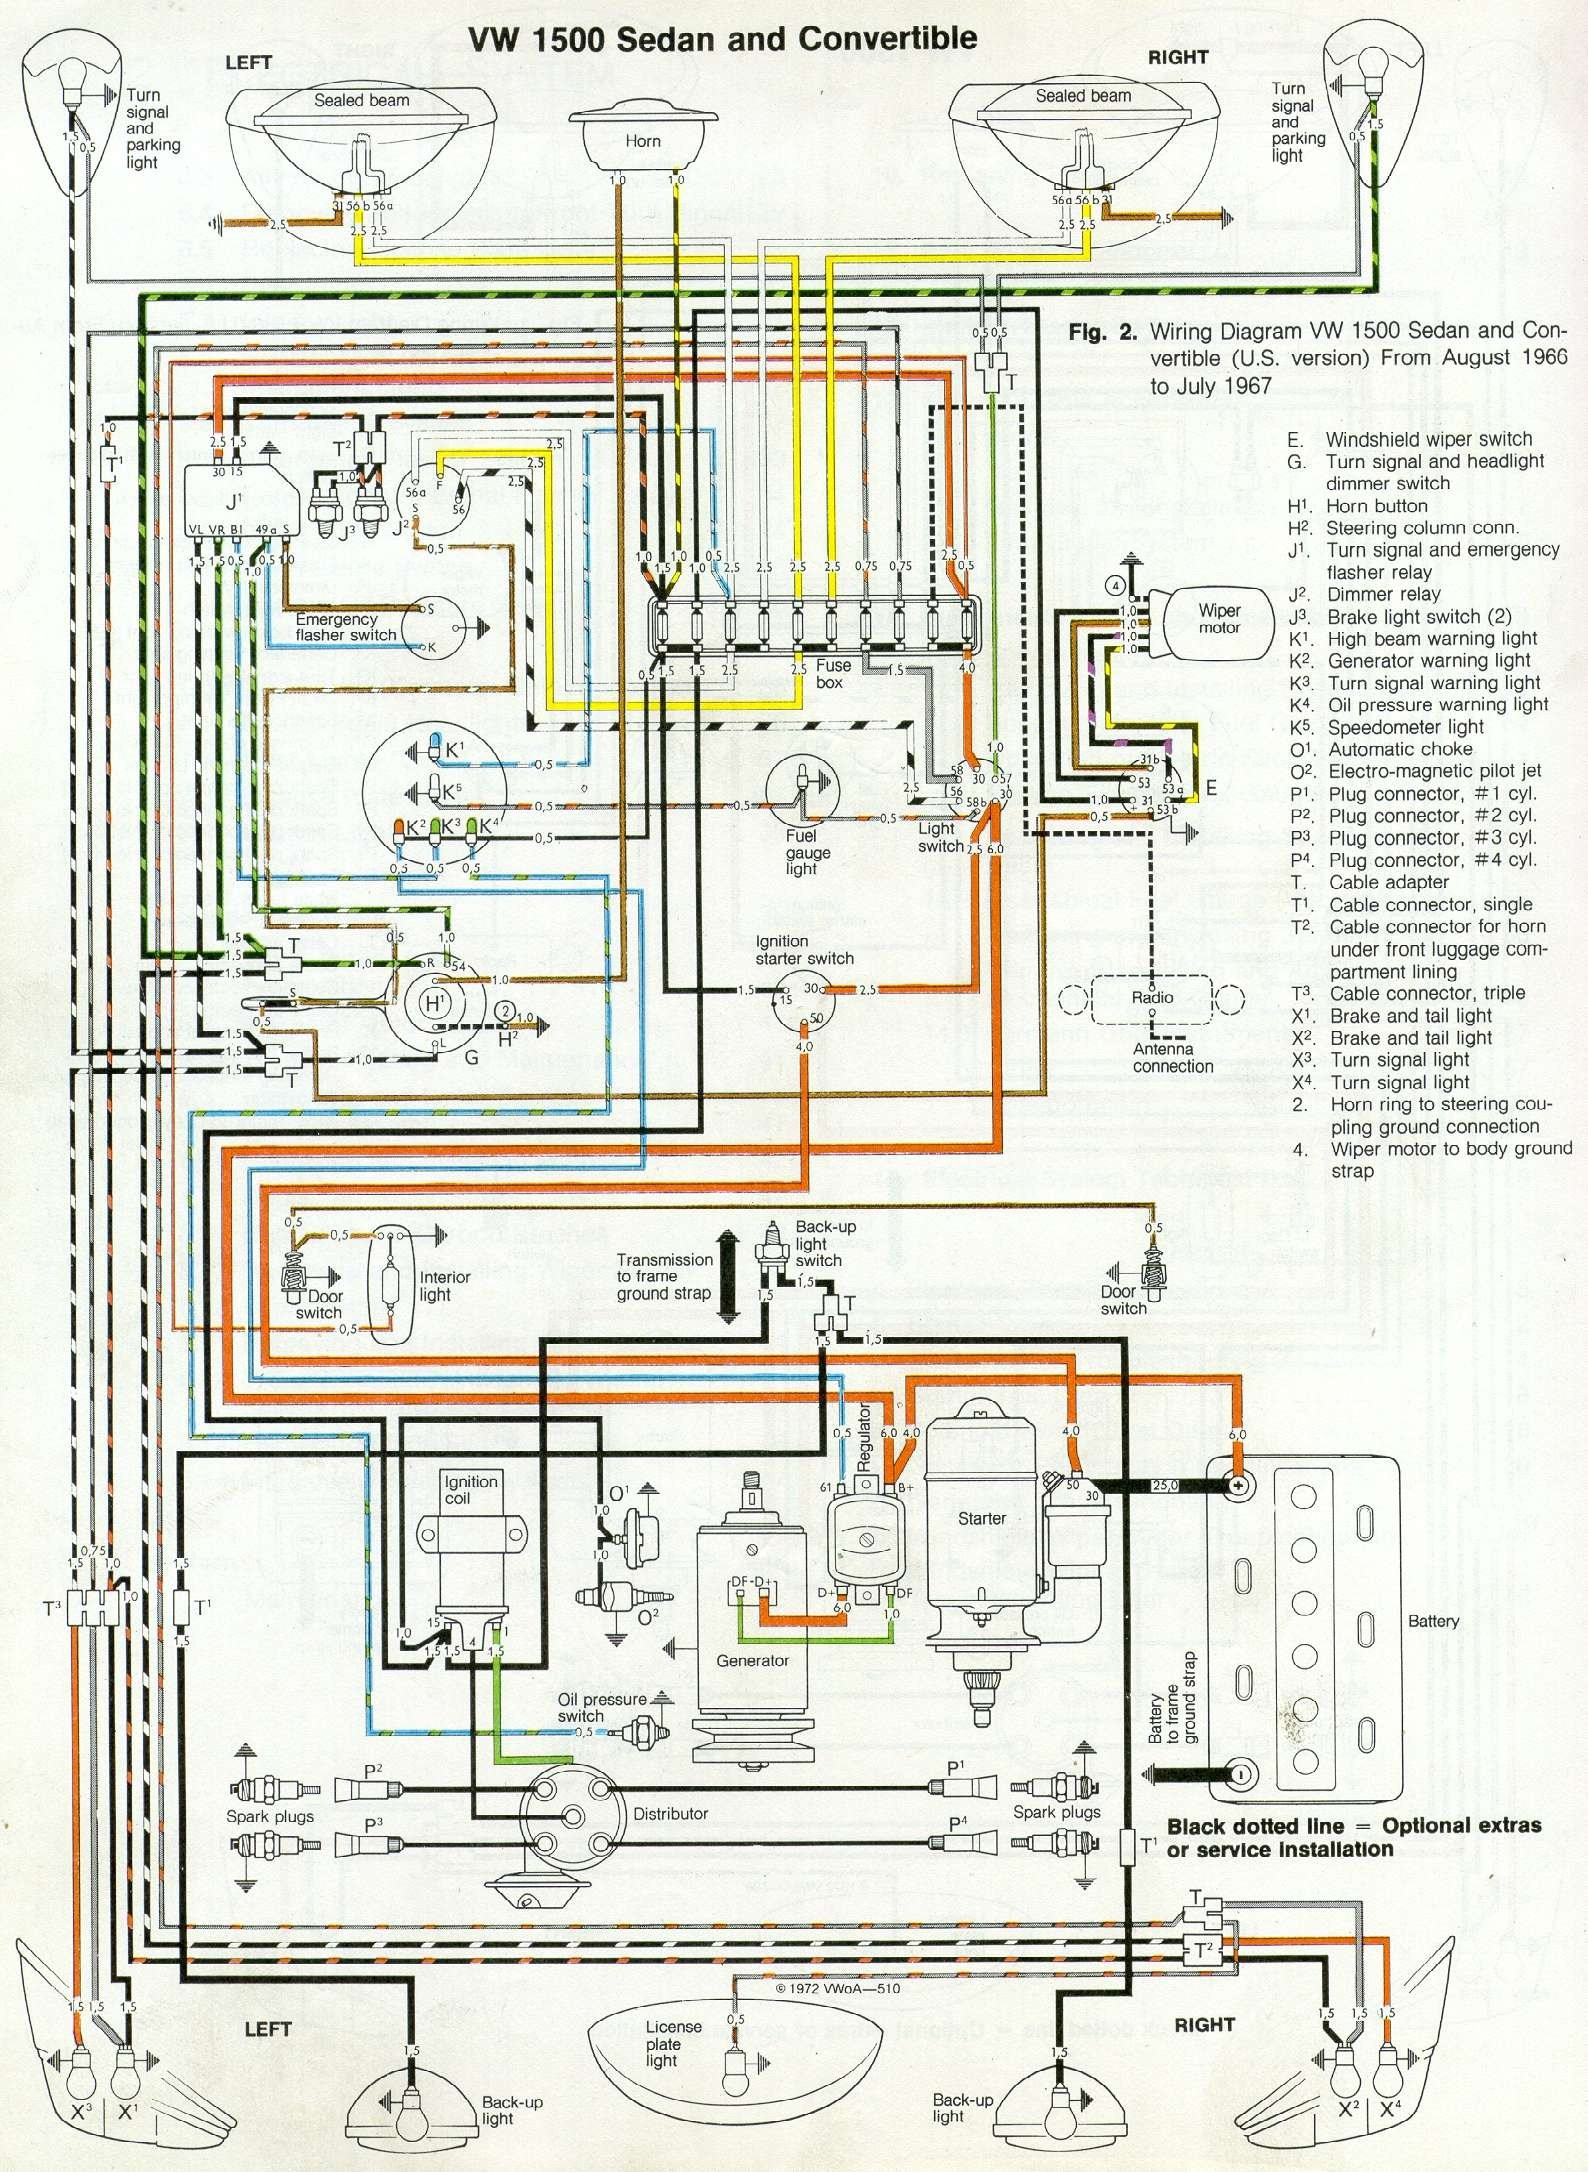 VW Beetle Wiring Digram 67 beetle wiring diagram u s version 1967 vw beetle vw bug wiring diagram at soozxer.org